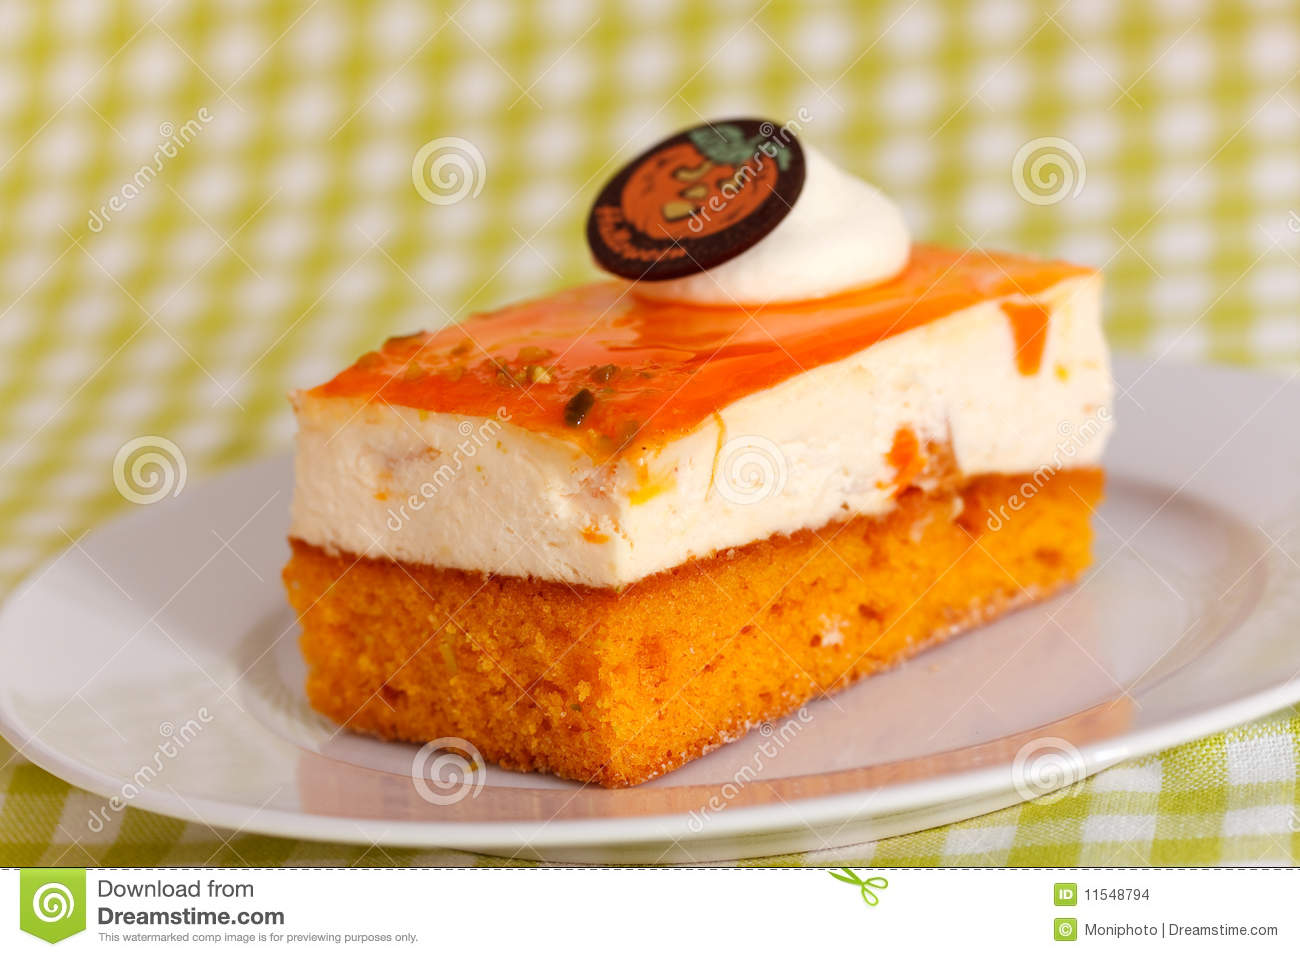 Orange Cream Cake With Cream Stock Images - Image: 11548794